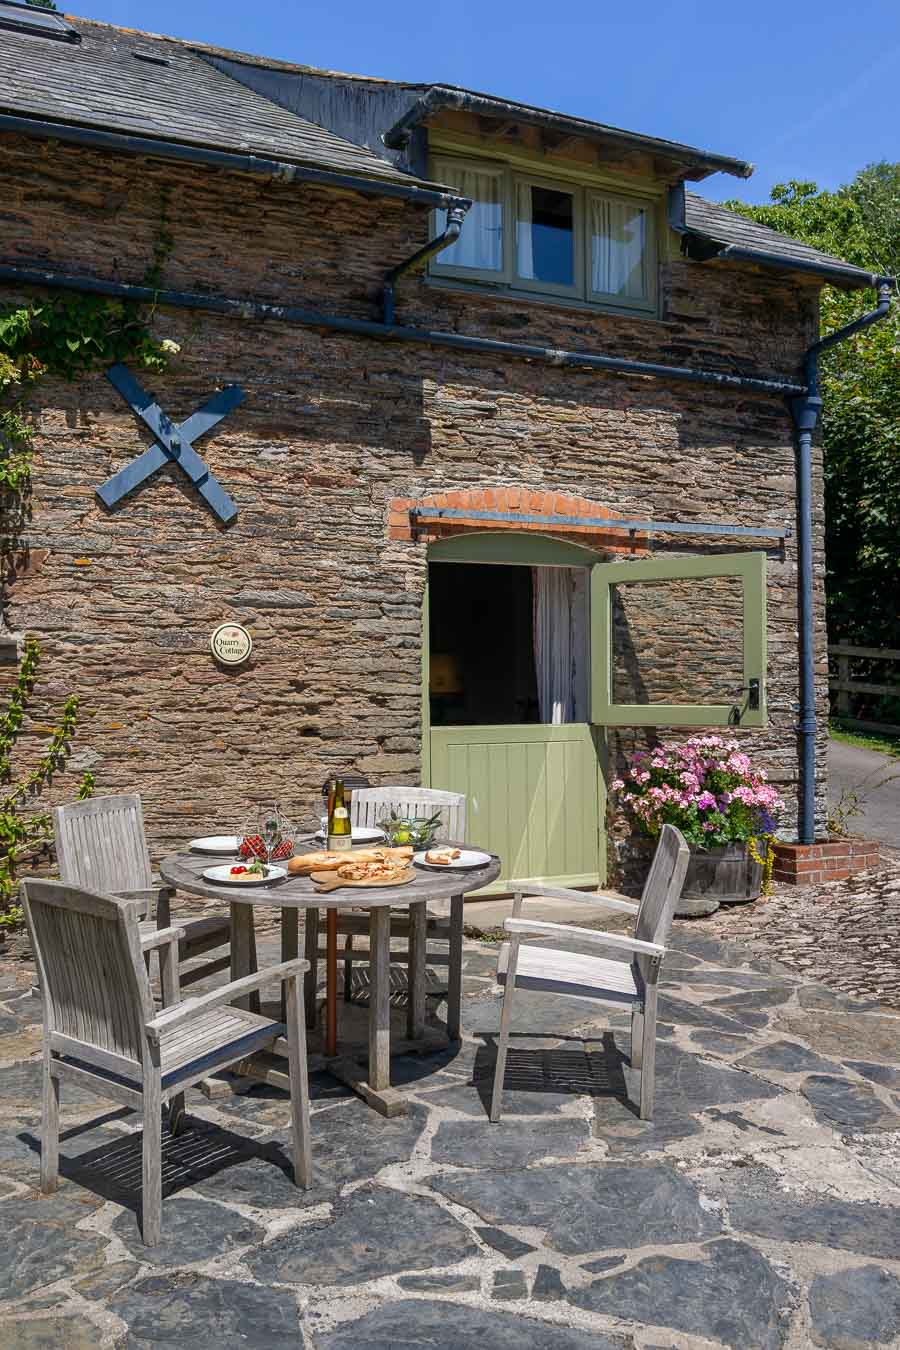 The stable door and original slate and stone of Quarry cottage Flear Farm. With wooden outdoor furniture for four and slate patio area looking onto the rolling green Devon hills.